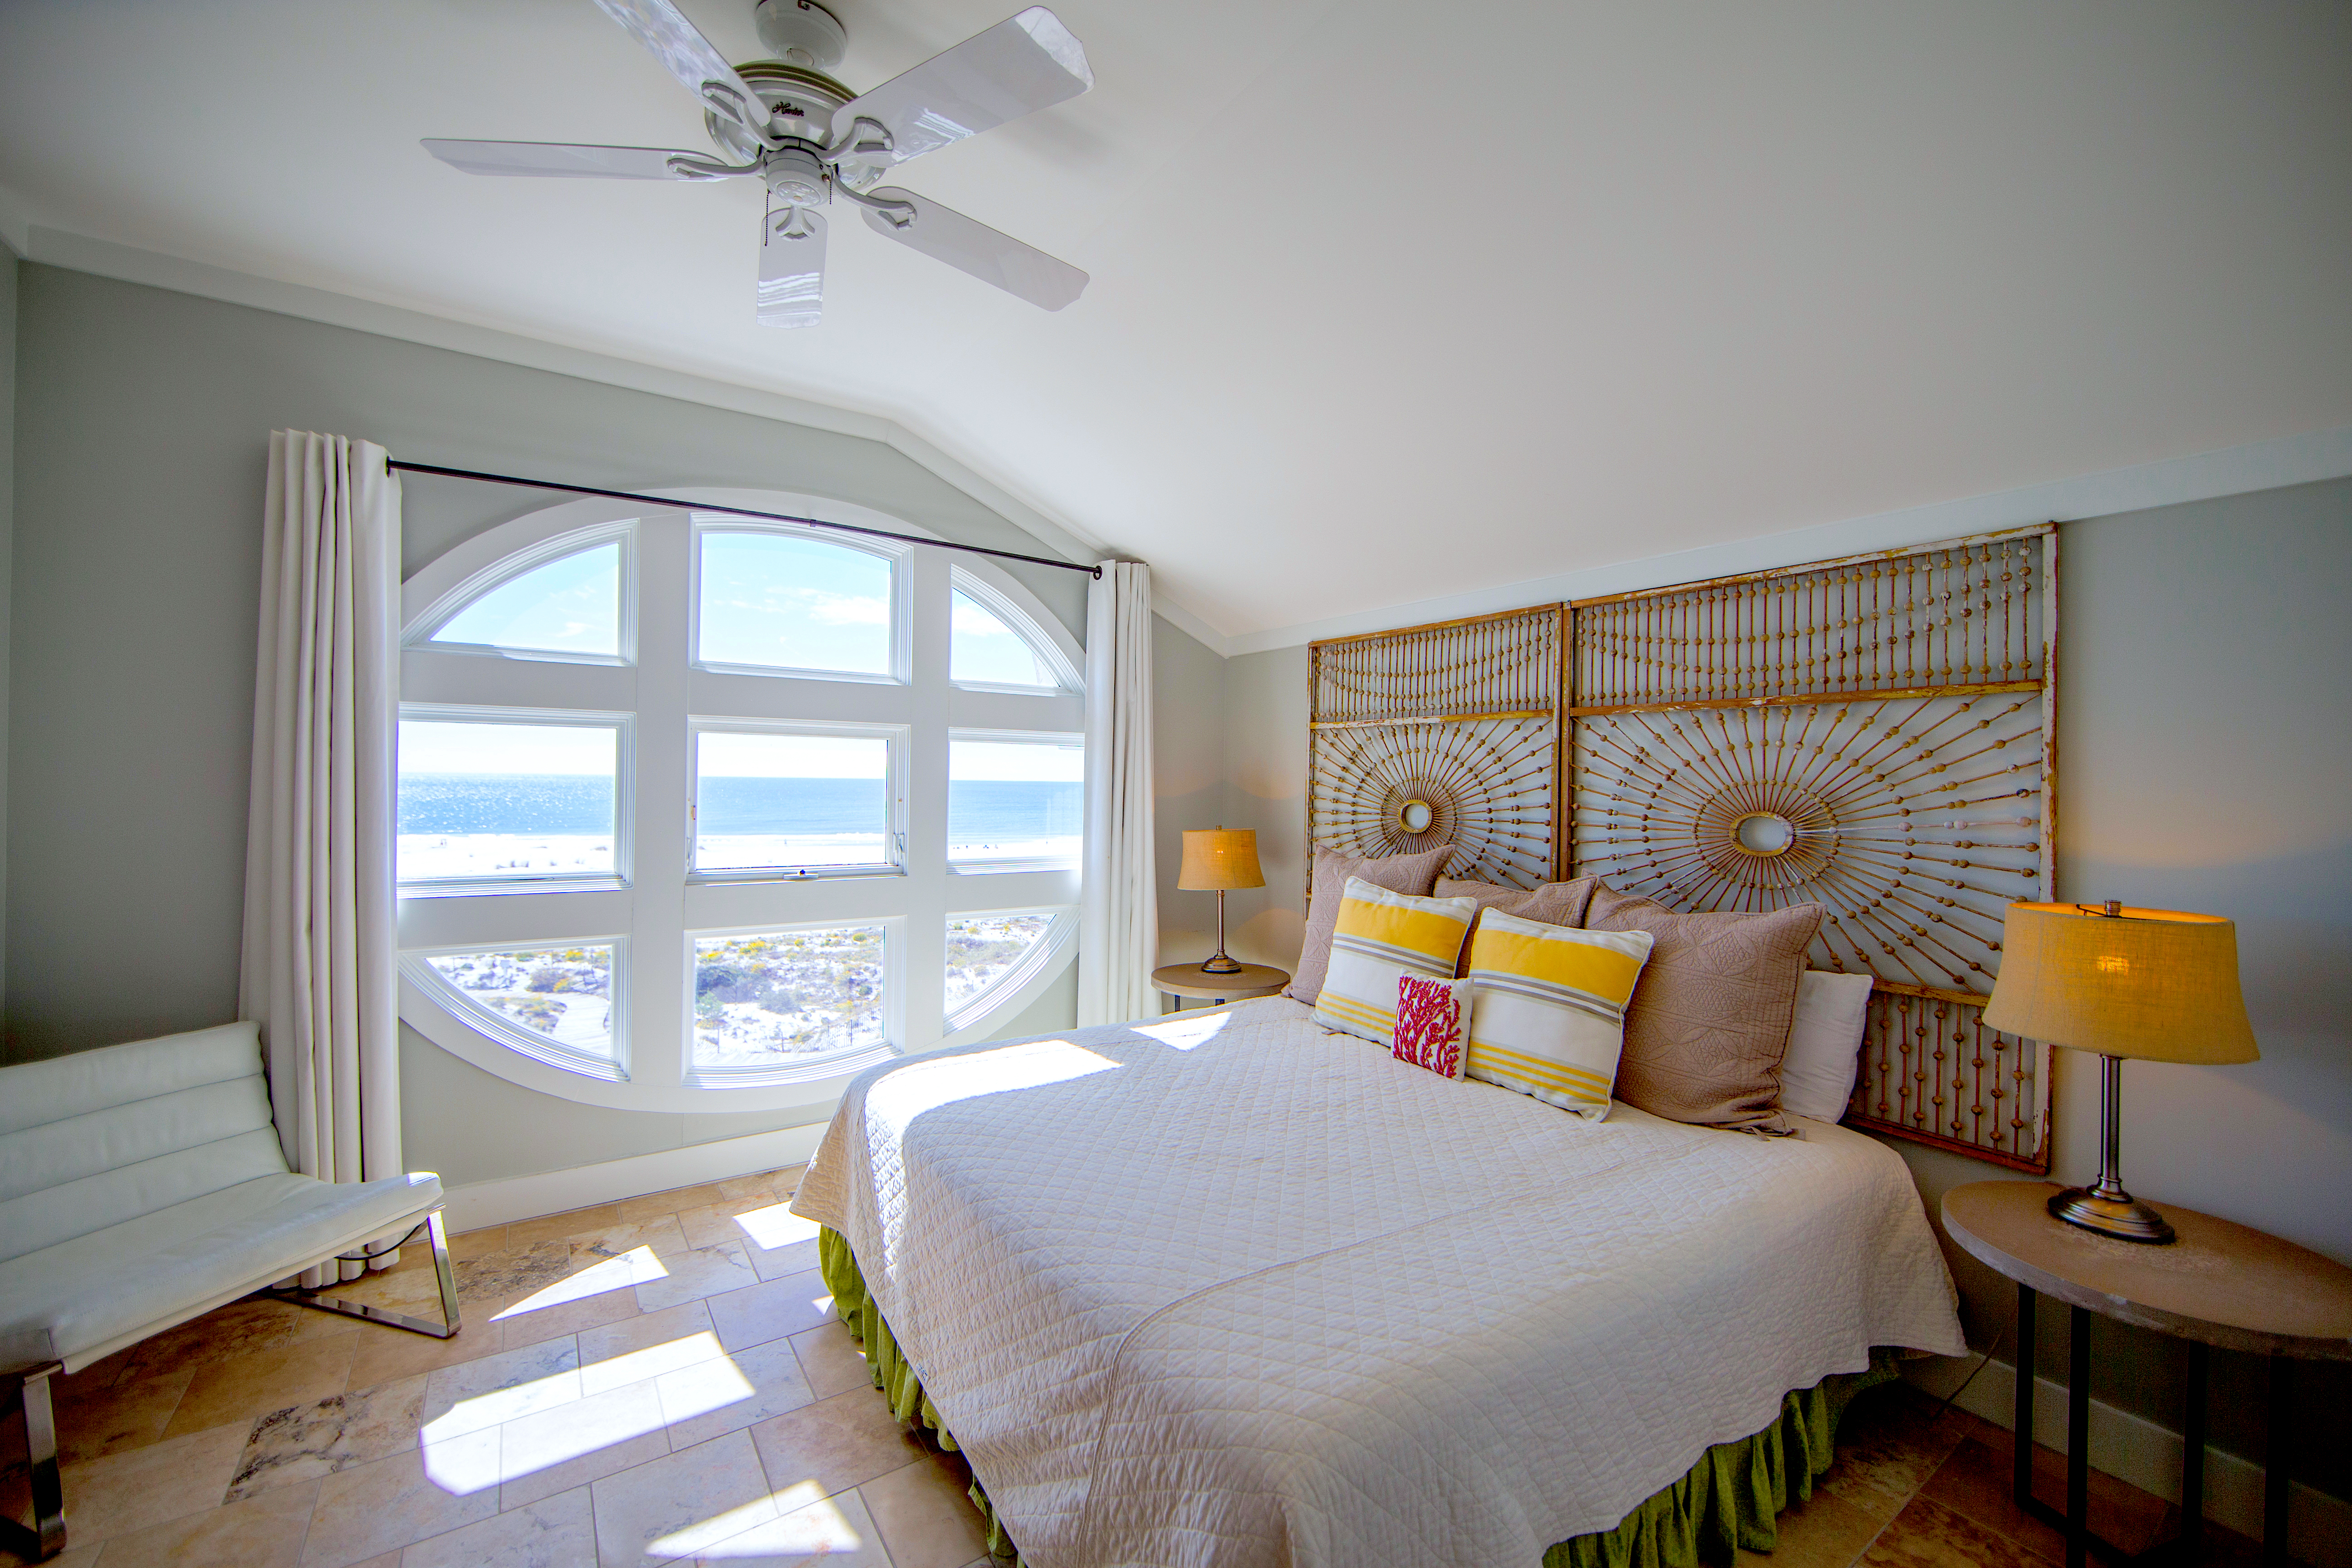 Beautiful gulf views can be seen from this king sized guest bedroom.